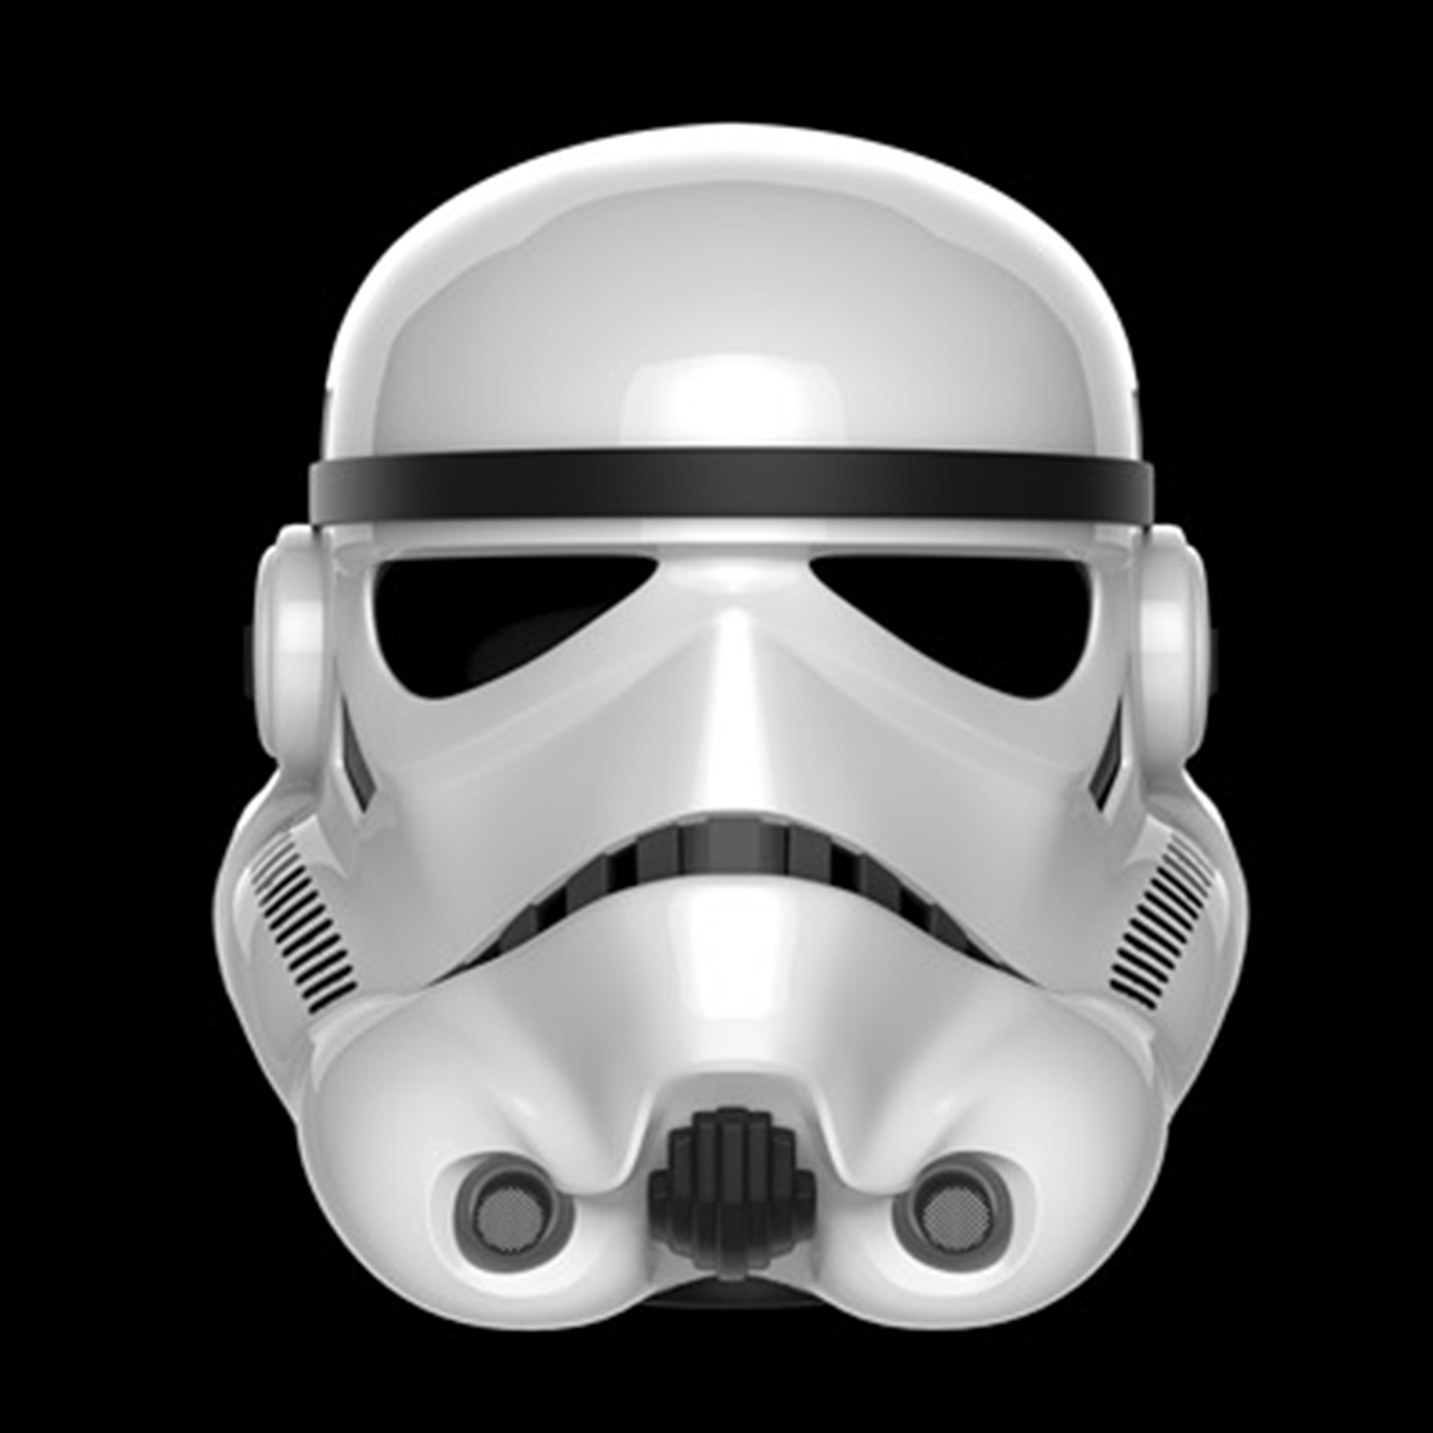 HOME PAGE - TEMPLATE-Recovered_0012_59.Port - Star wars (Endor).jpg